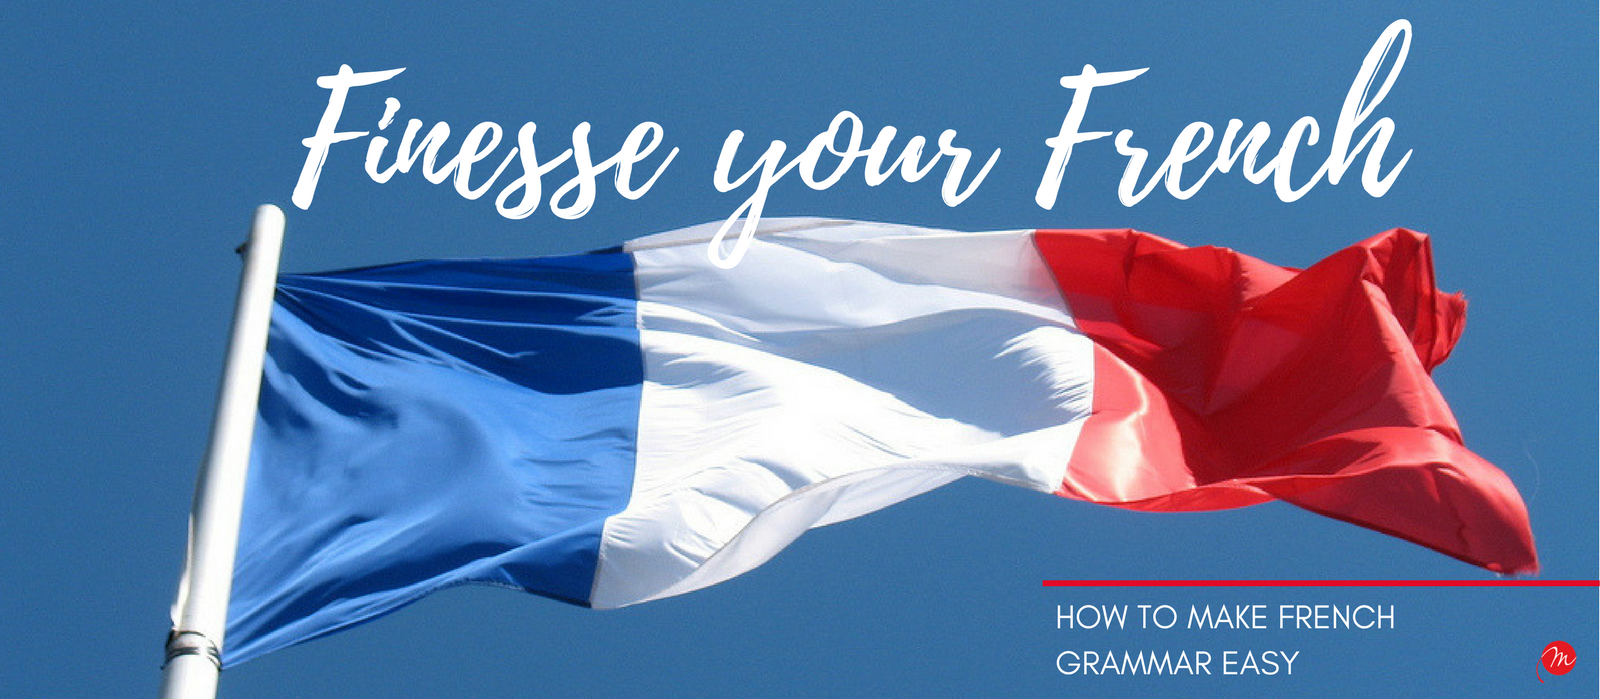 MyFrenchLife™ – MyFrenchLife.org - French grammar easy - How to make French grammar easy - finesse your French - Learn French - French language learning - Flag